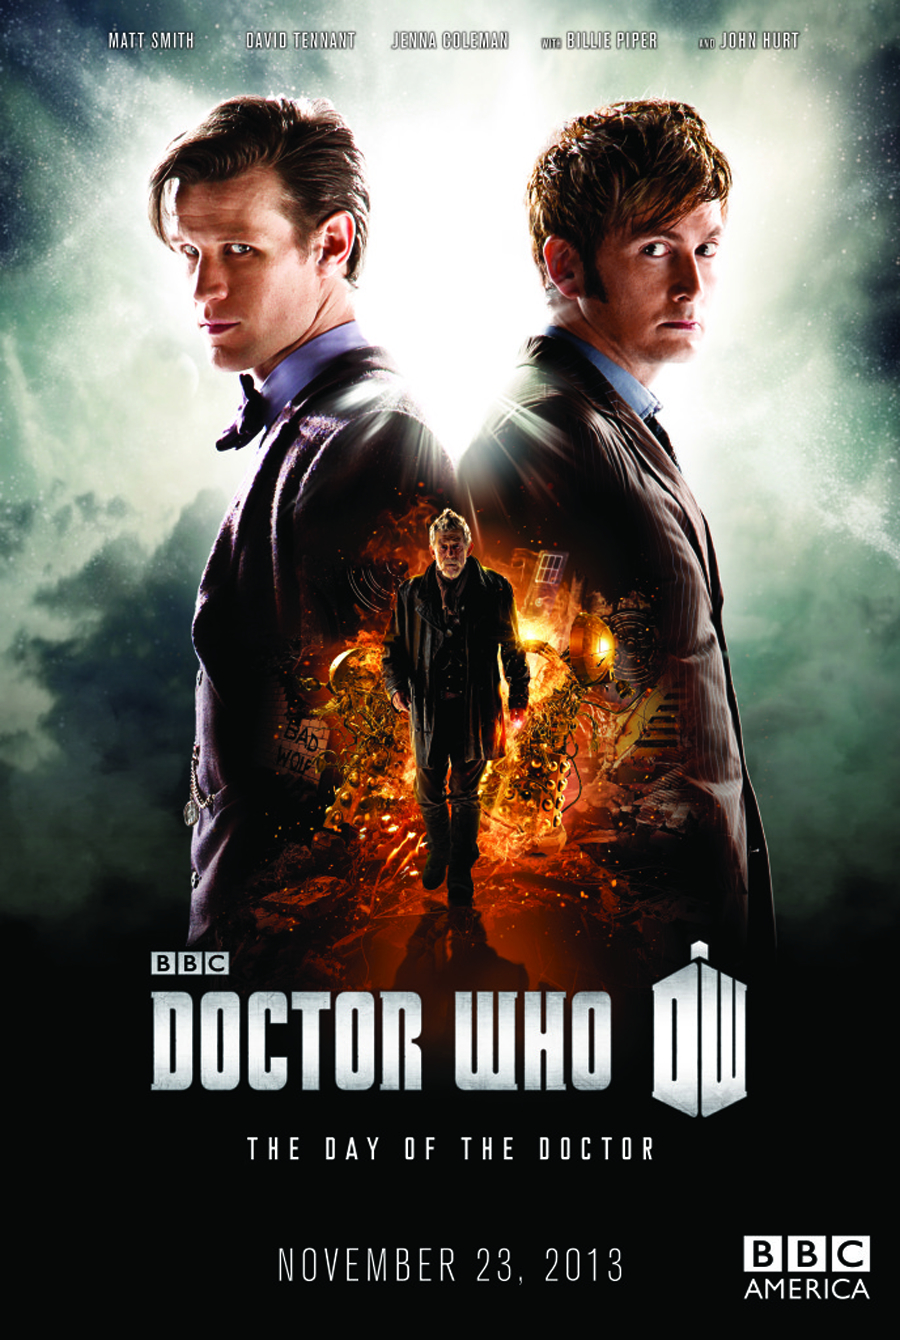 DOCTOR WHO THE DAY OF THE DOCTOR BD + DVD